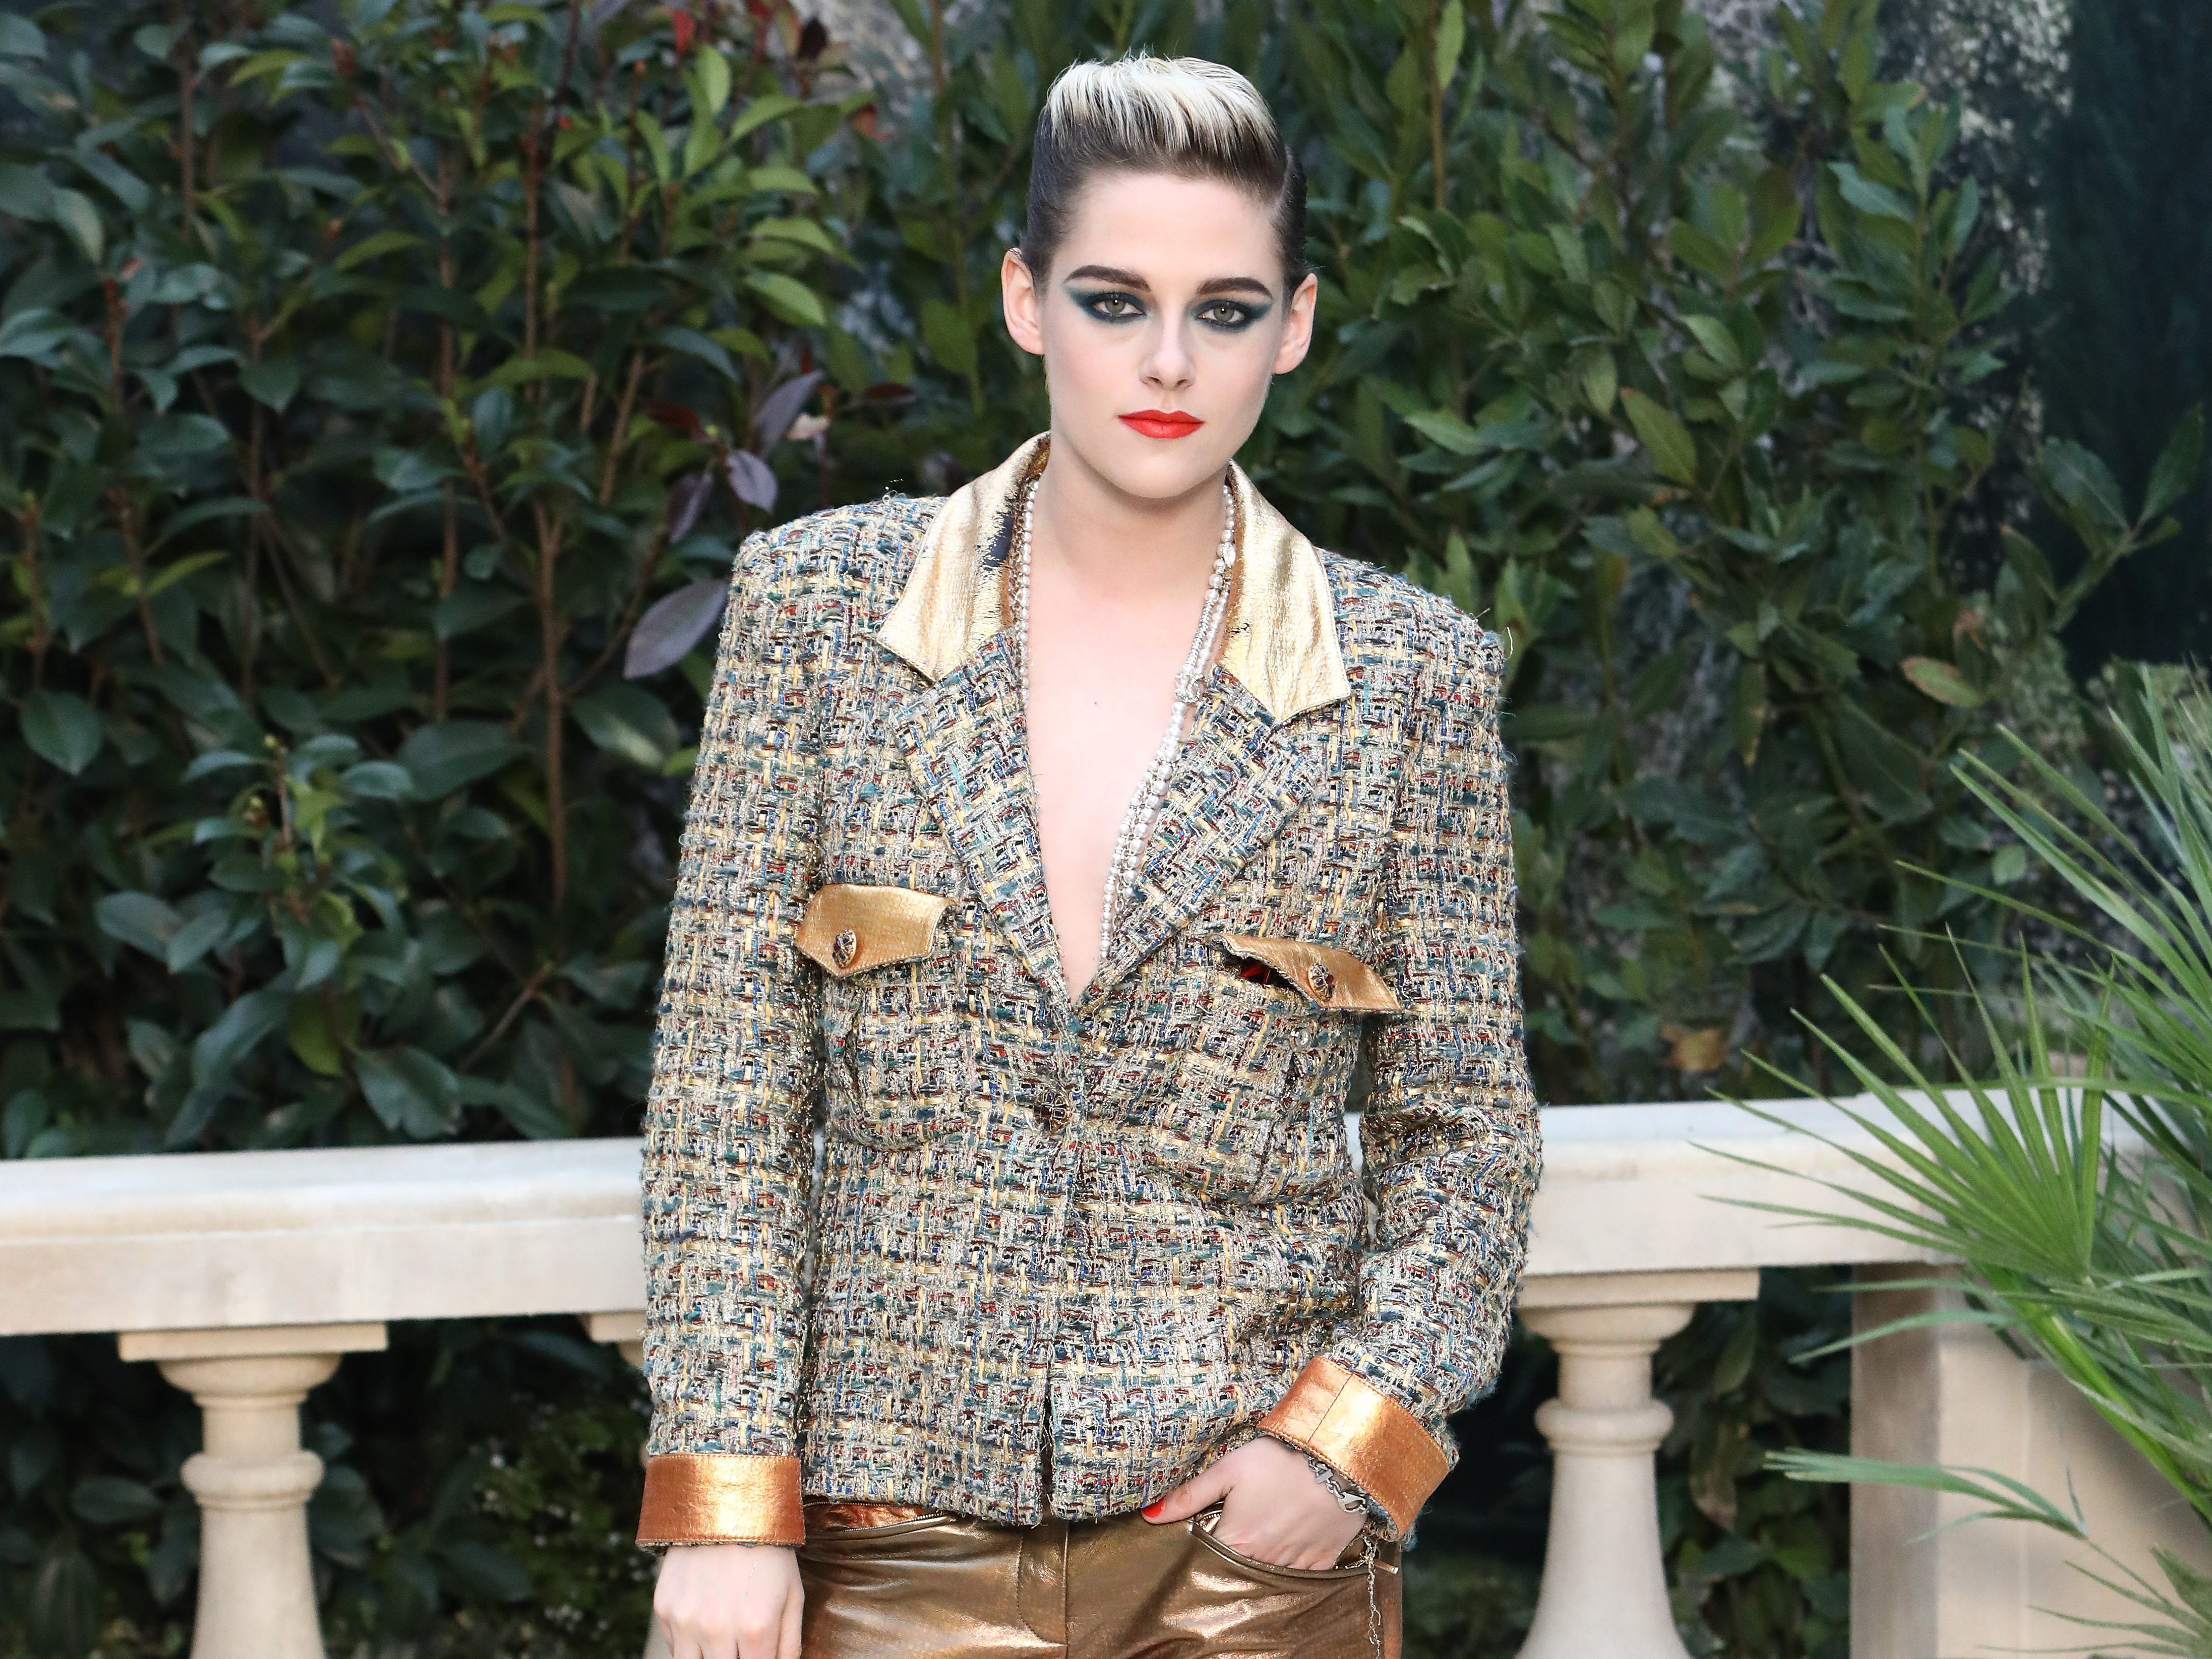 PARIS, FRANCE - JANUARY 22: Kristen Stewart attends the Chanel Haute Couture Spring Summer 2019 show as part of Paris Fashion Week  on January 22, 2019 in Paris, France. (Photo by Julien M. Hekimian/Getty Images for Chanel) ORG XMIT: 775281016 ORIG FILE ID: 1097987080